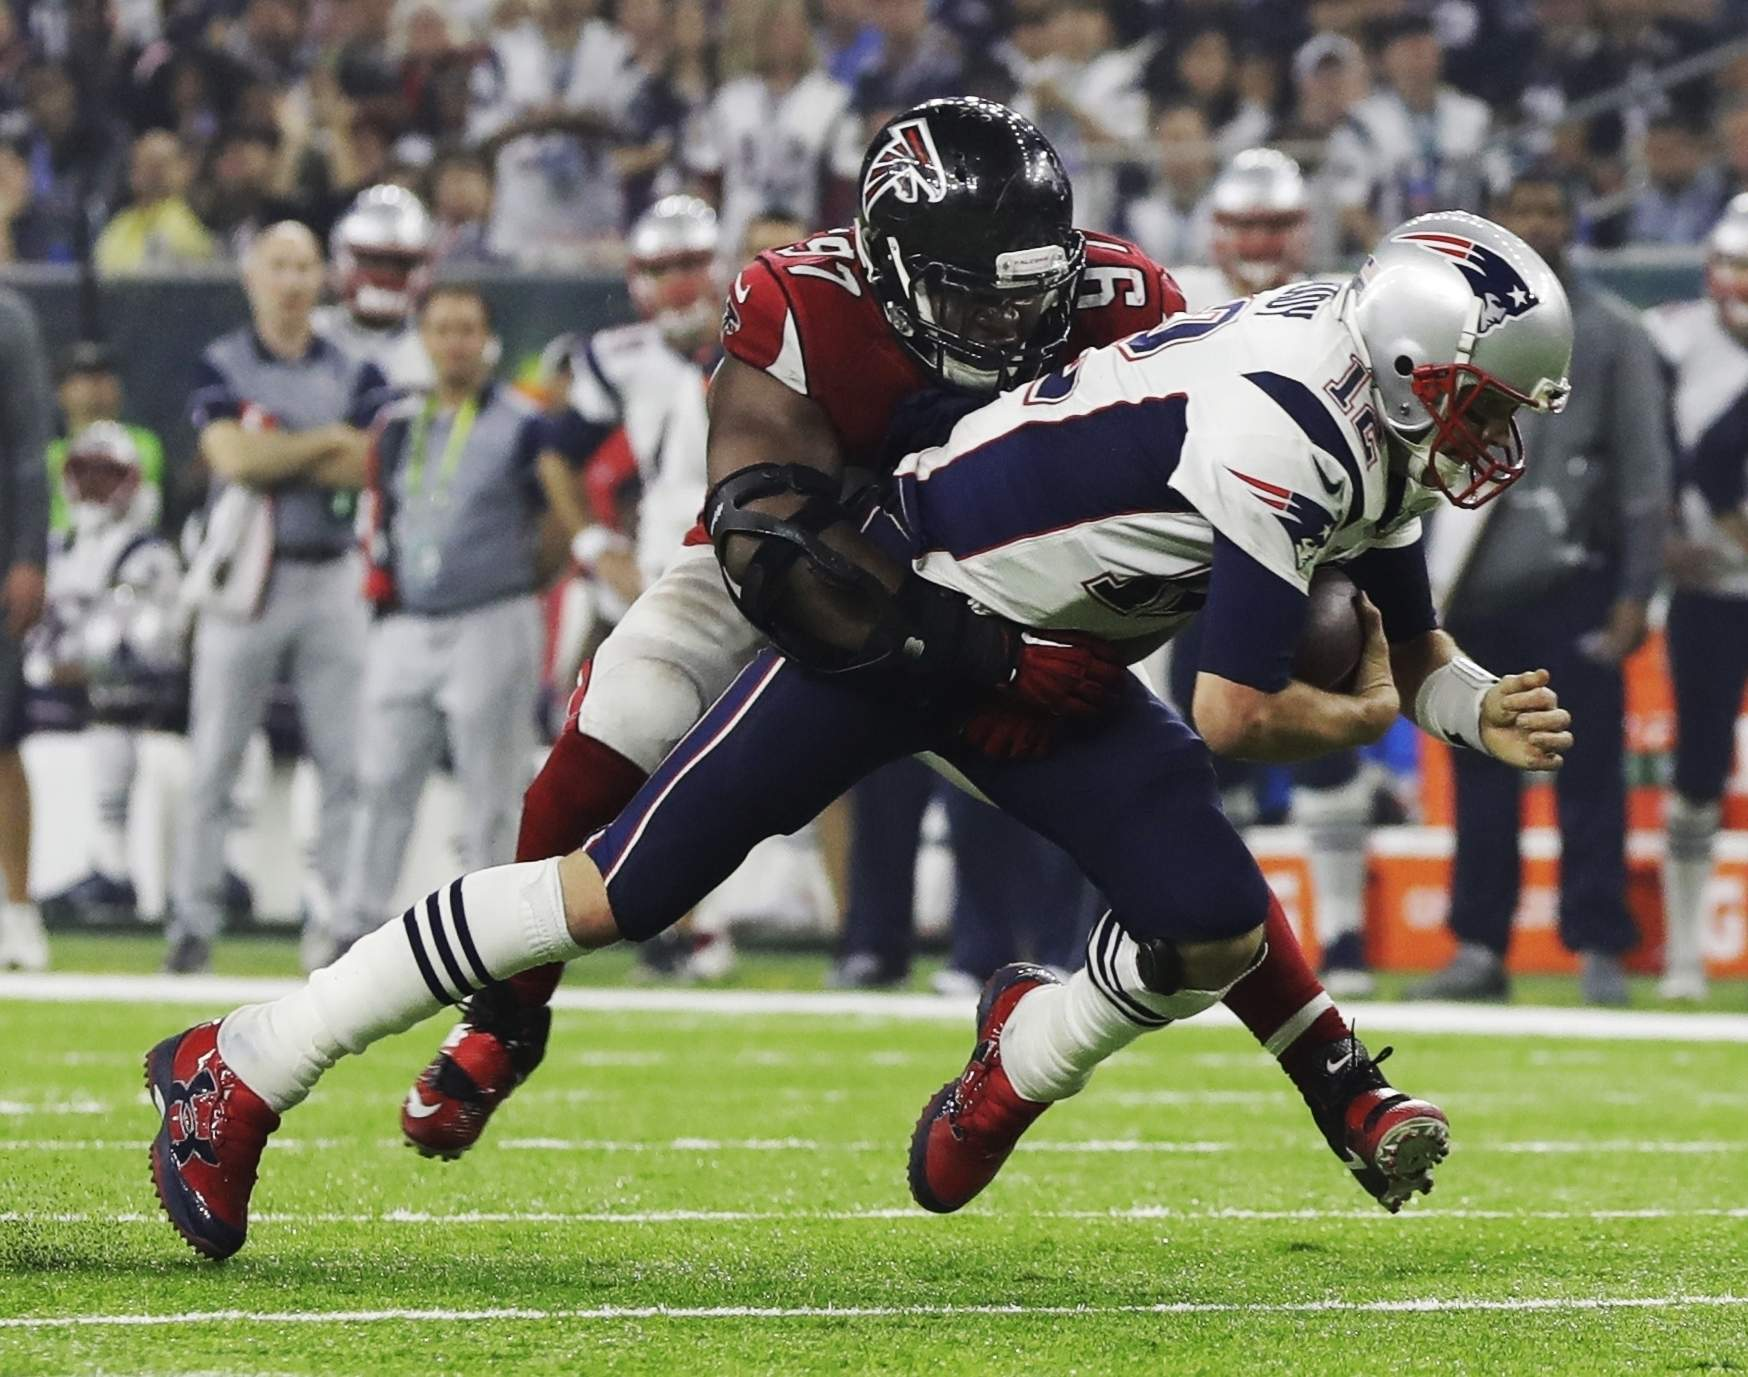 The New England Patriots' Tom Brady is sacked by the Atlanta Falcons' Grady Jarrett during the second half Sunday, Feb. 5, 2017, in Houston. THE ASSOCIATED PRESS